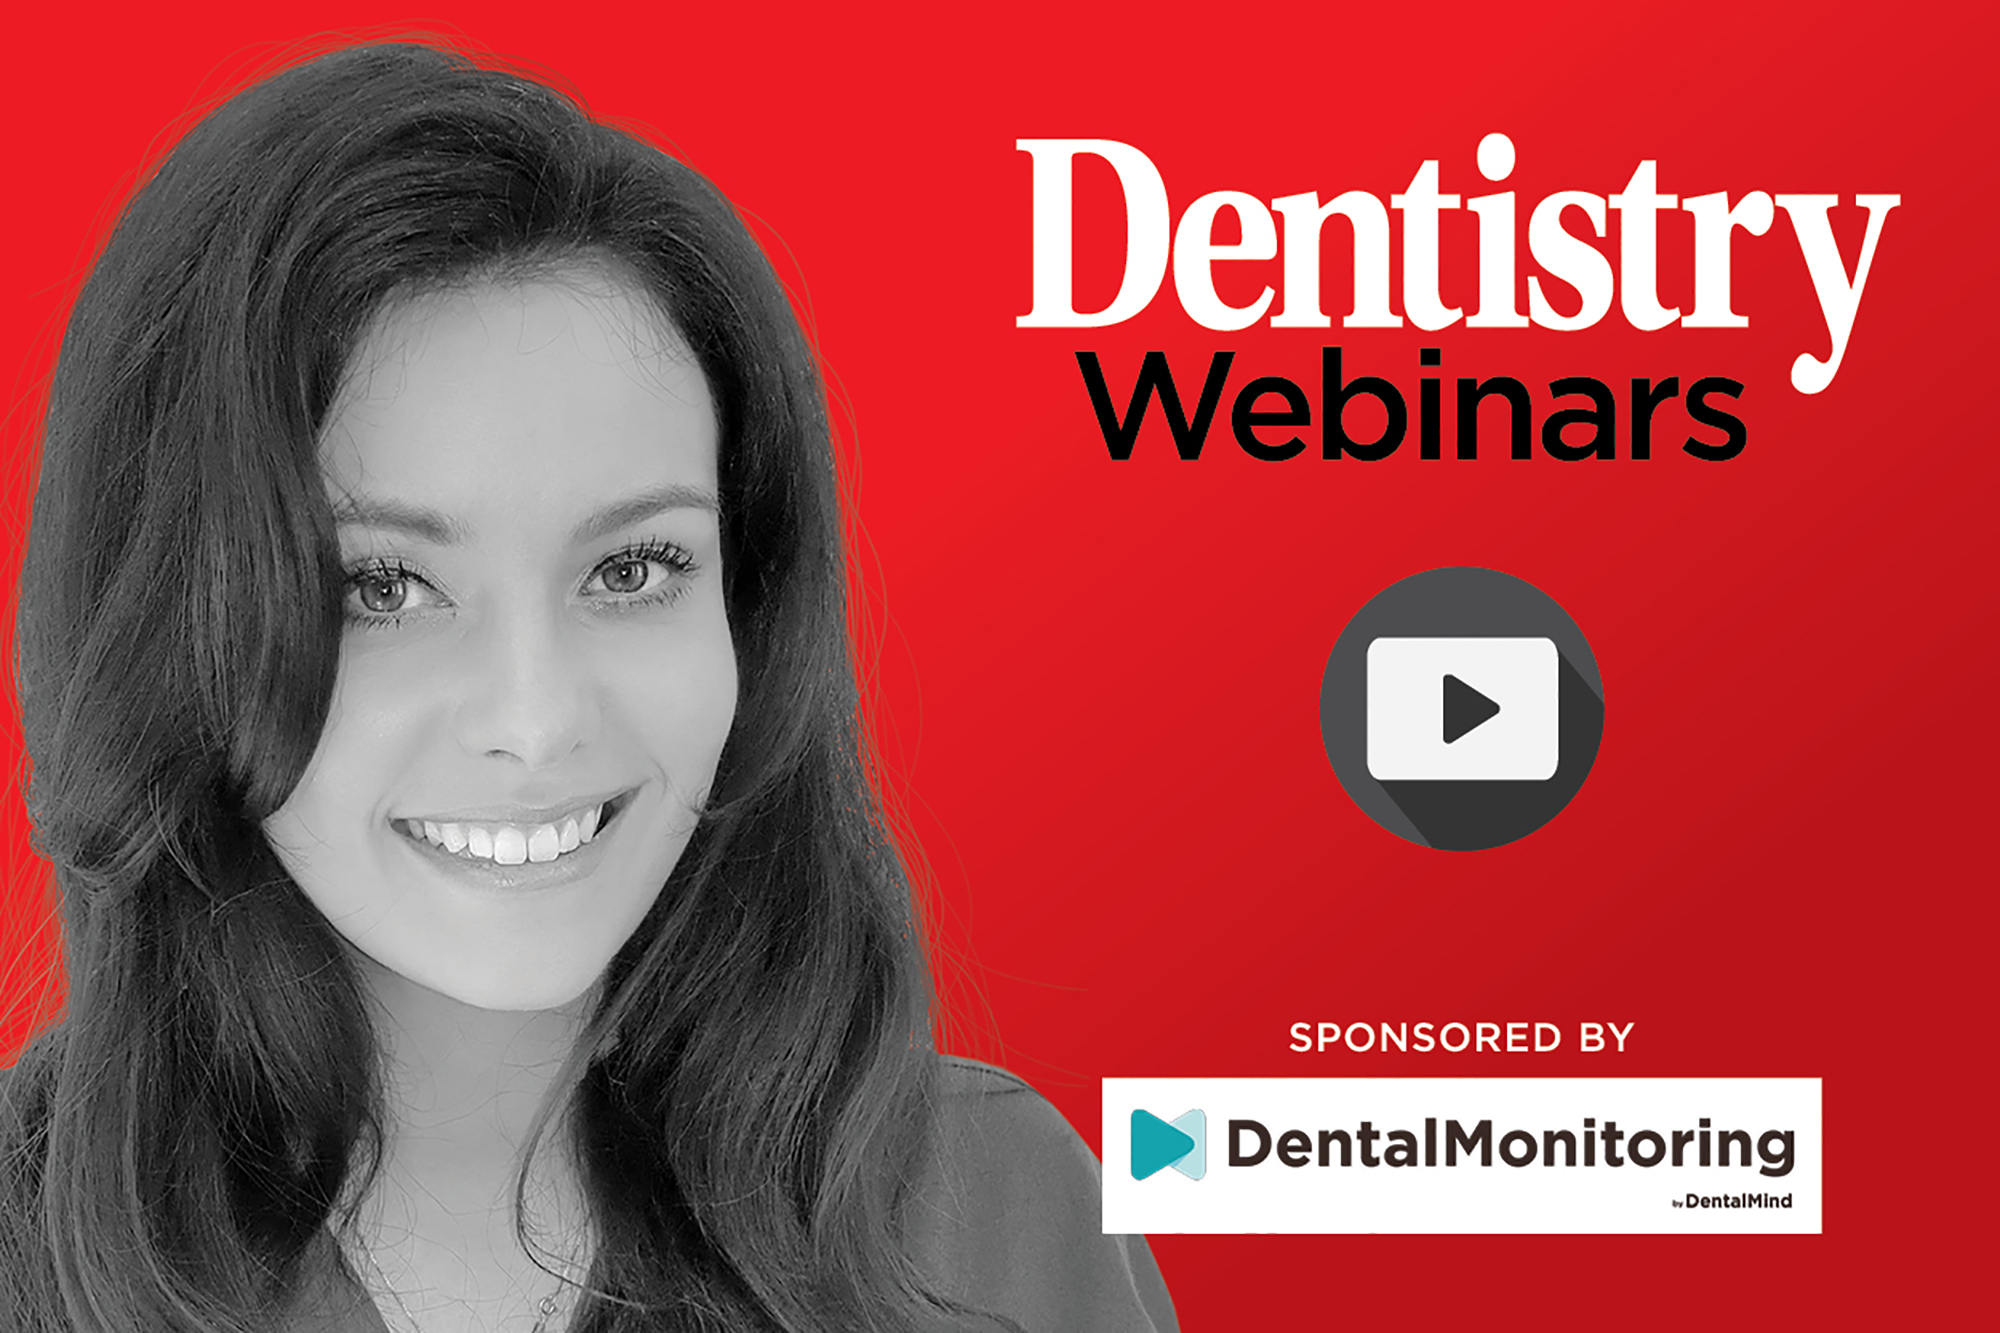 Join Dr Keely Thorne for a free webinar on making the most of the boom in cosmetic dentistry on Wednesday 12 May at 19:00